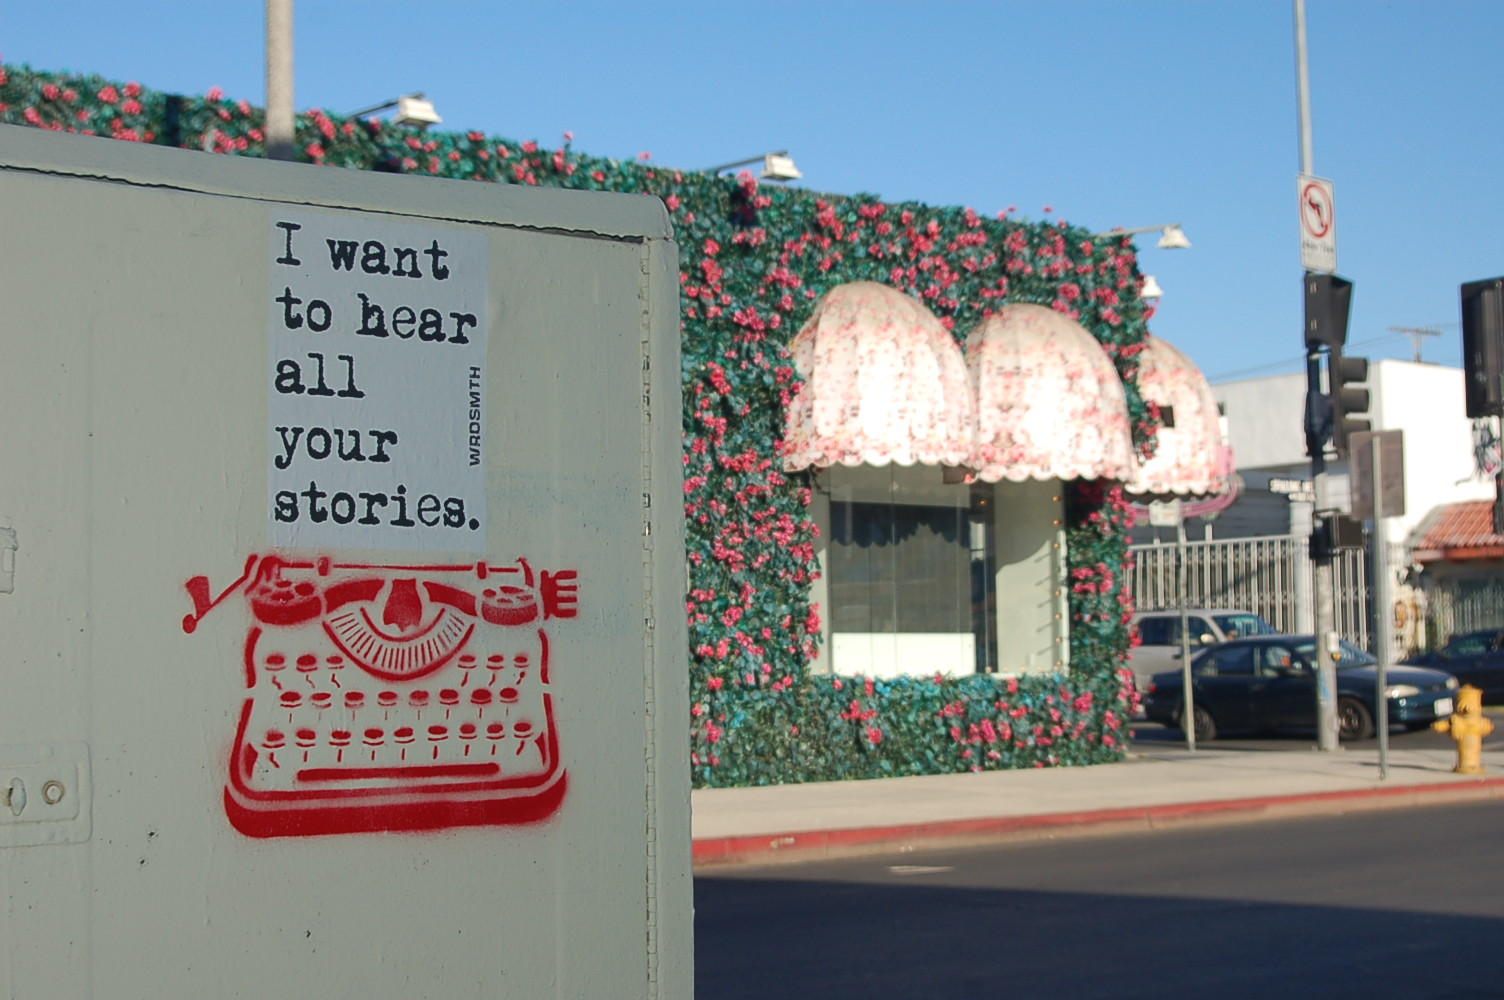 i want to hear all your stories